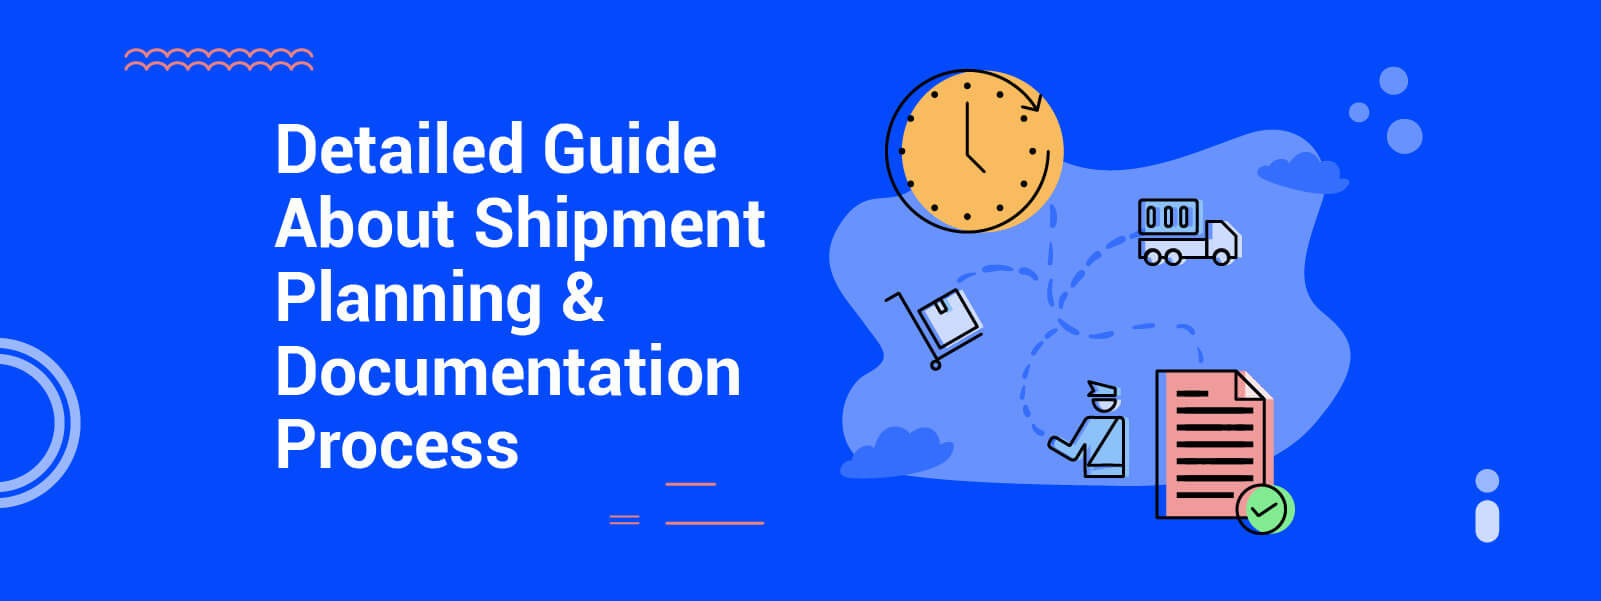 A Complete Guide To The Shipment Planning And Documentation Process